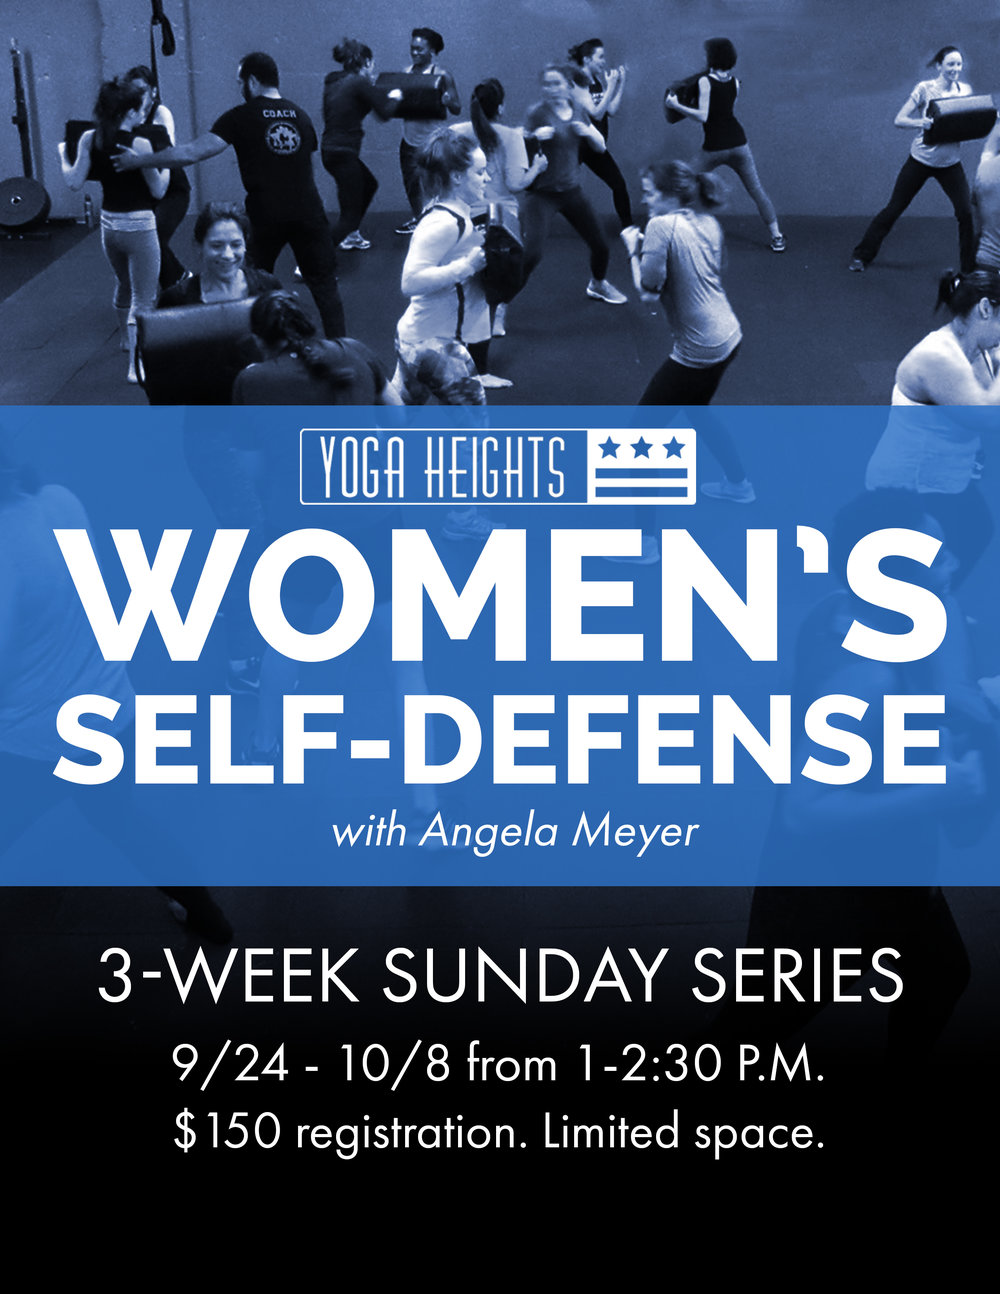 Women's Self Defense Social Poster.jpg